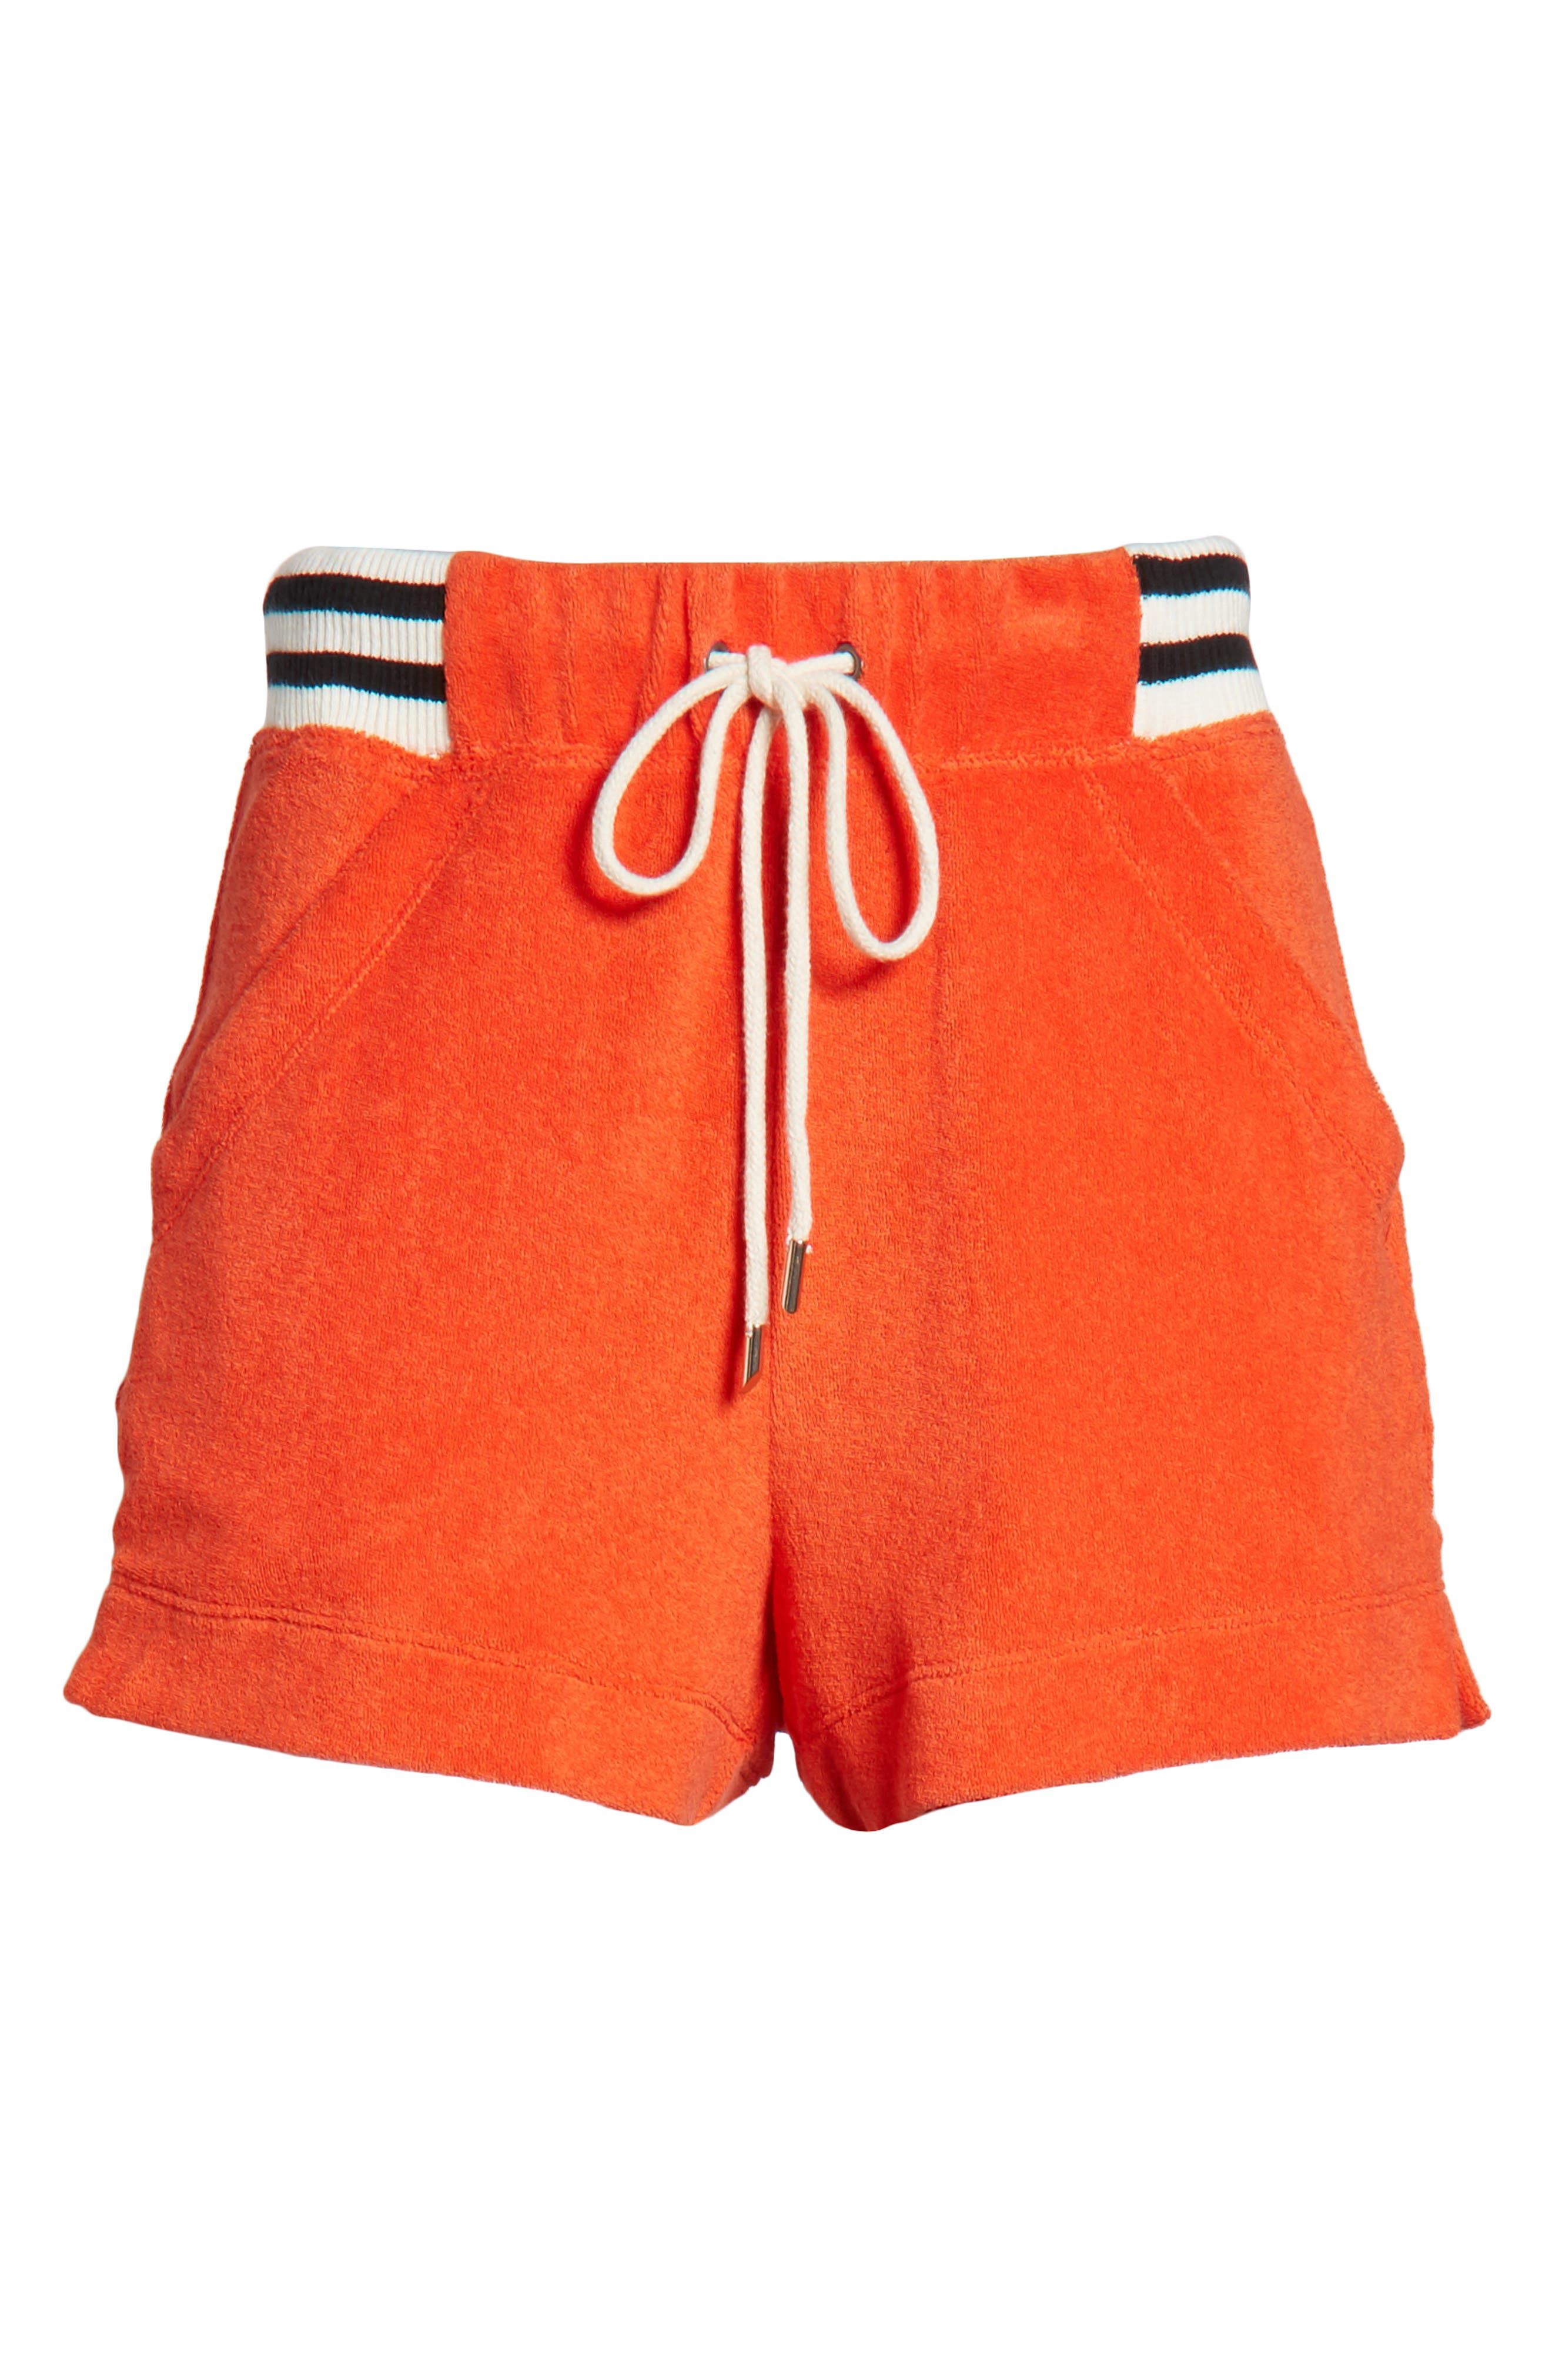 x Margherita Sportivo French Terry Shorts,                             Alternate thumbnail 6, color,                             Red